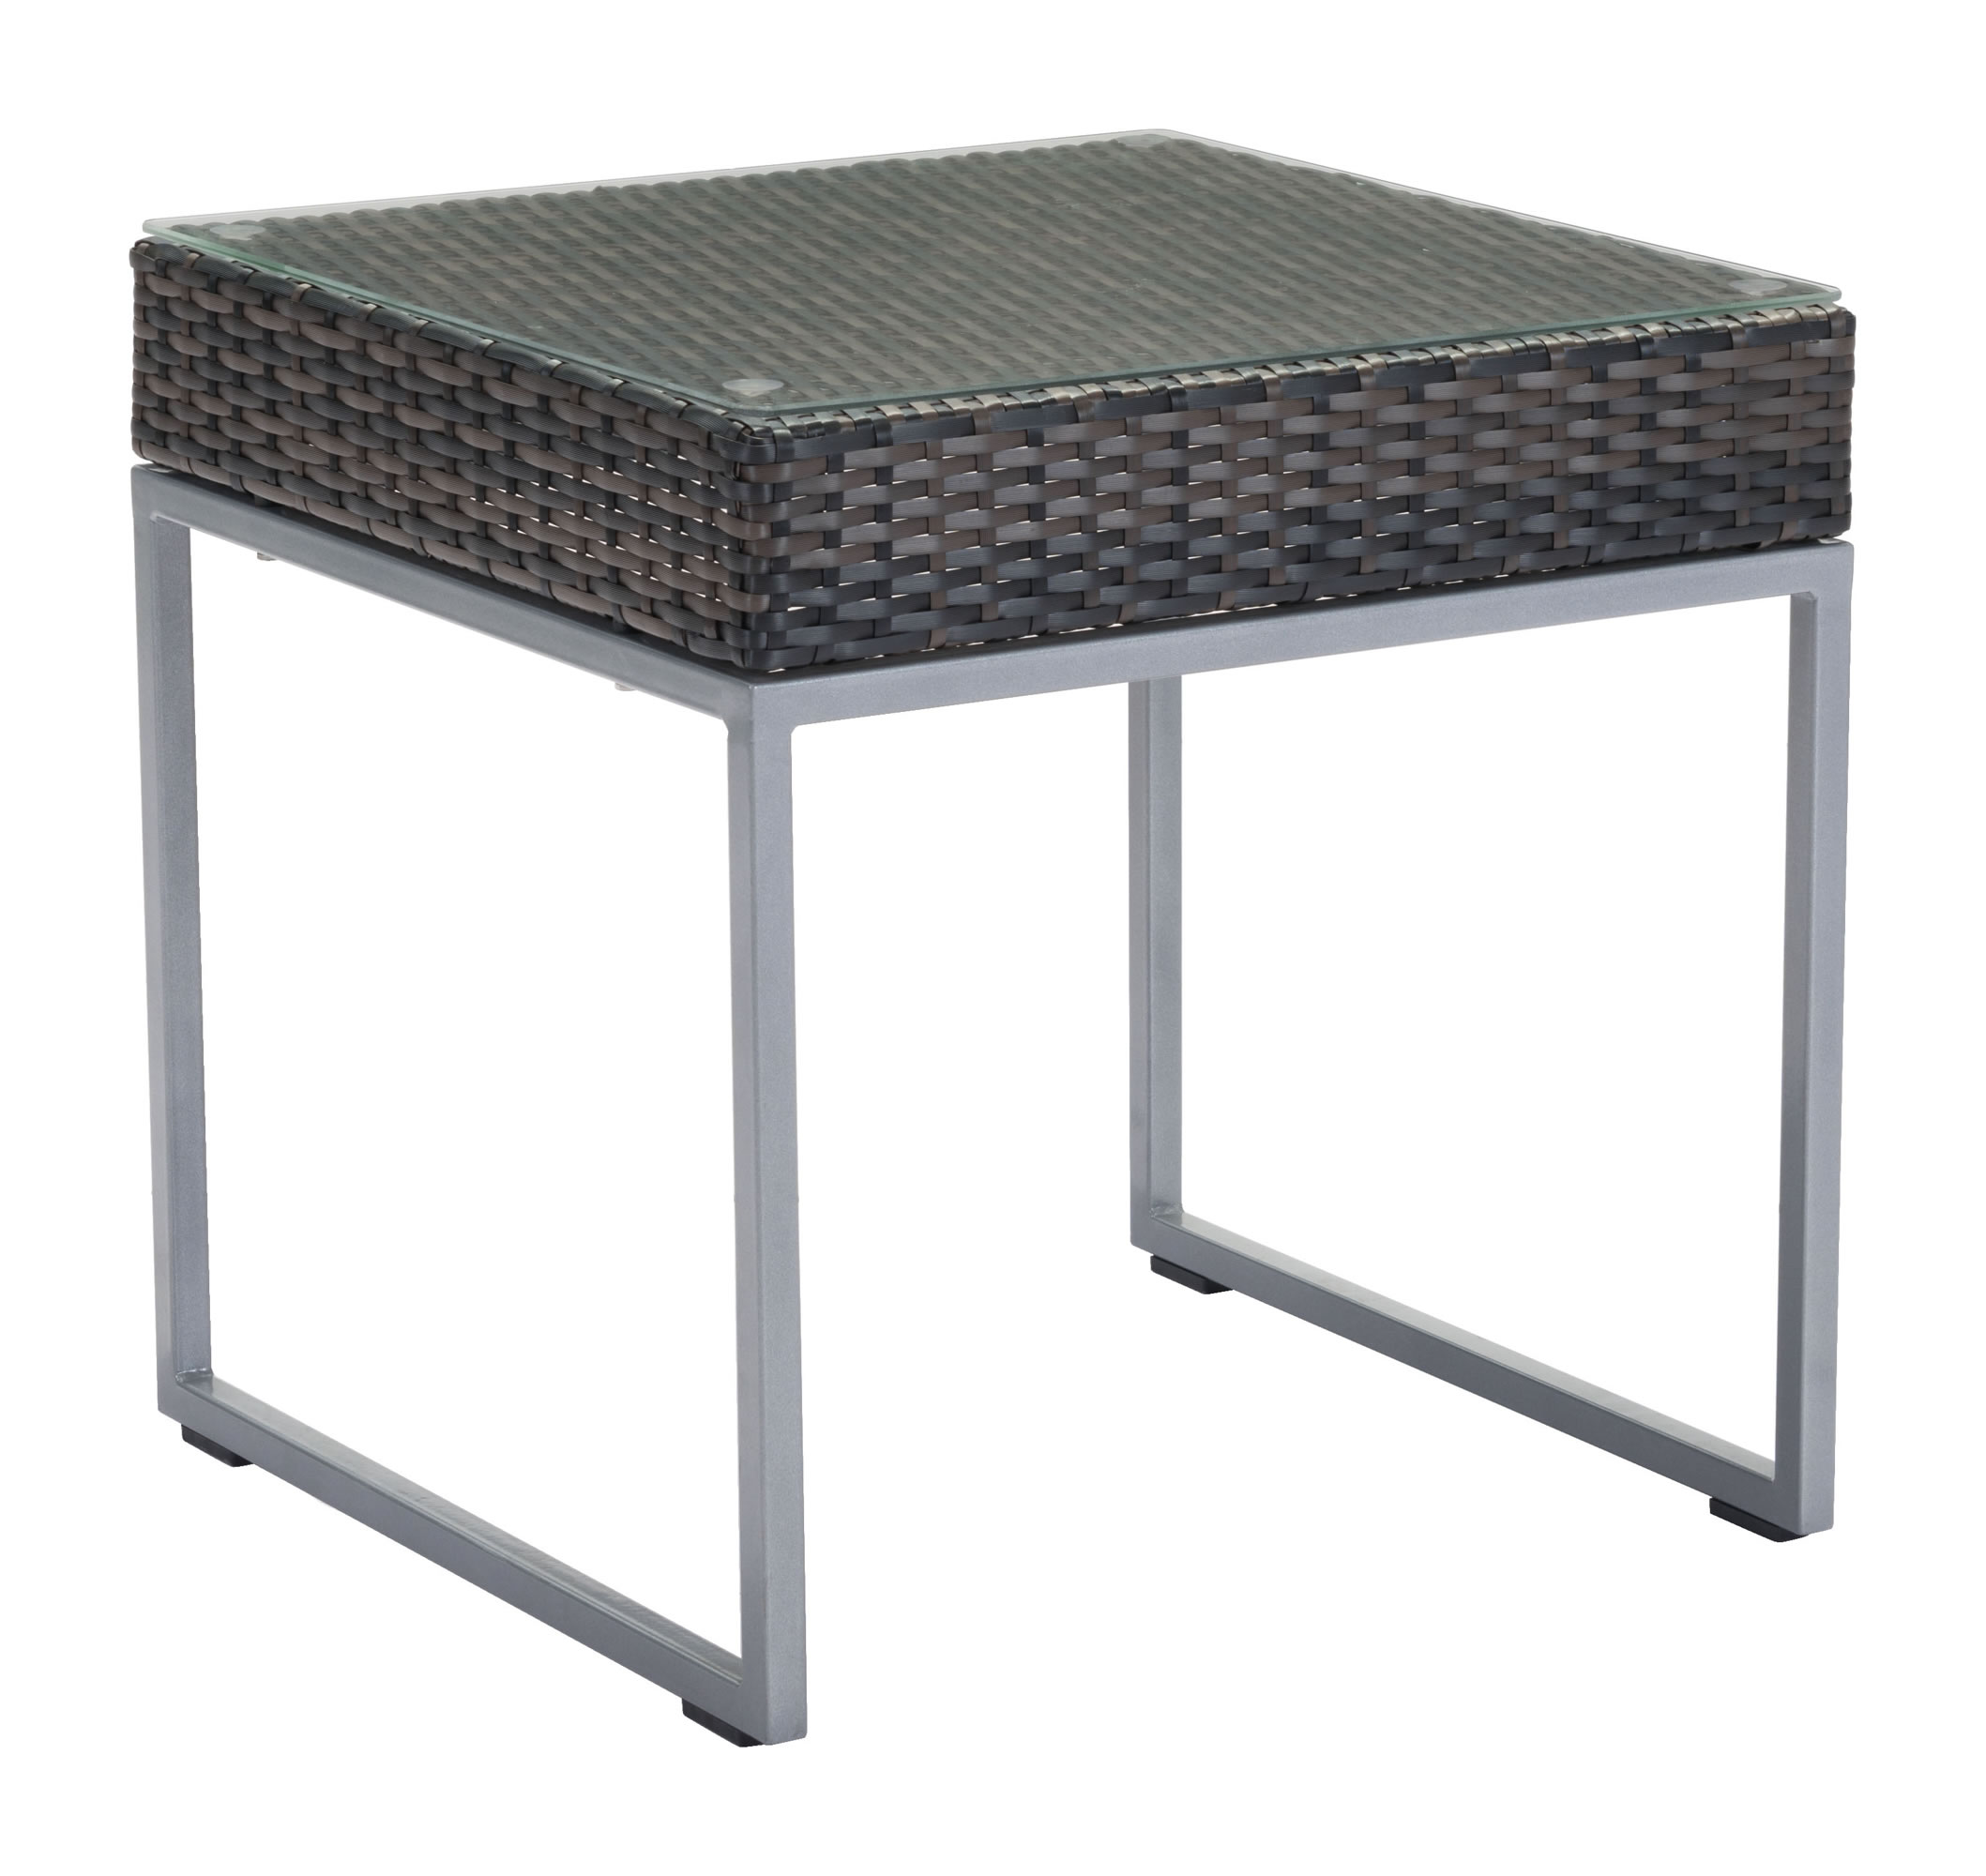 """22"""" x 22"""" x 22"""" Brown & Silver, Tempered Glass, Aluminum Frame, Synthetic Weave, Side Table"""